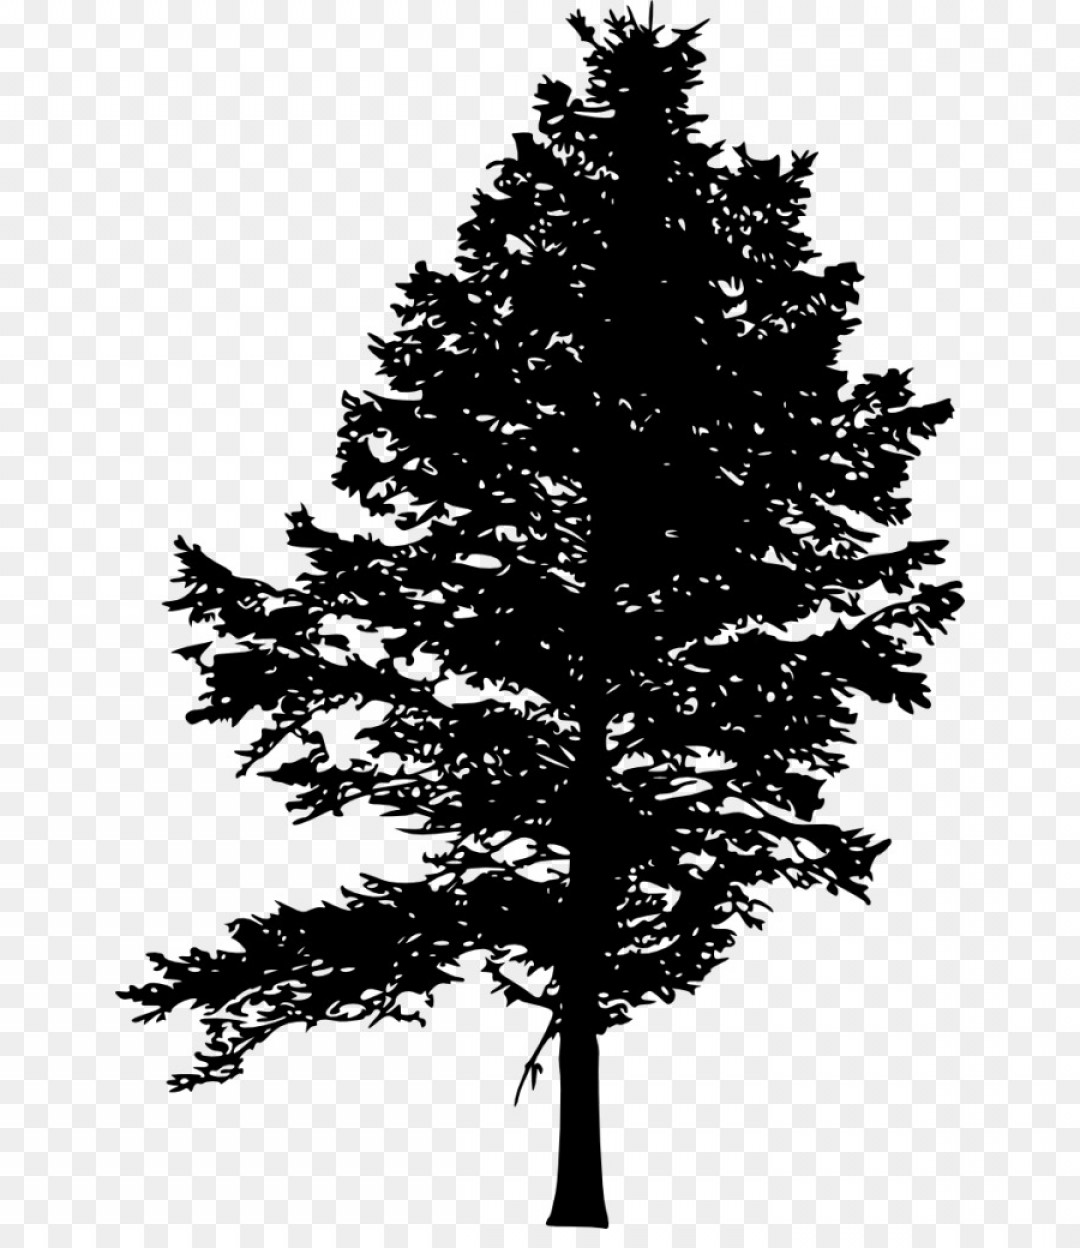 Png Pine Fir Tree Silhouette Drawing Pine Tree.